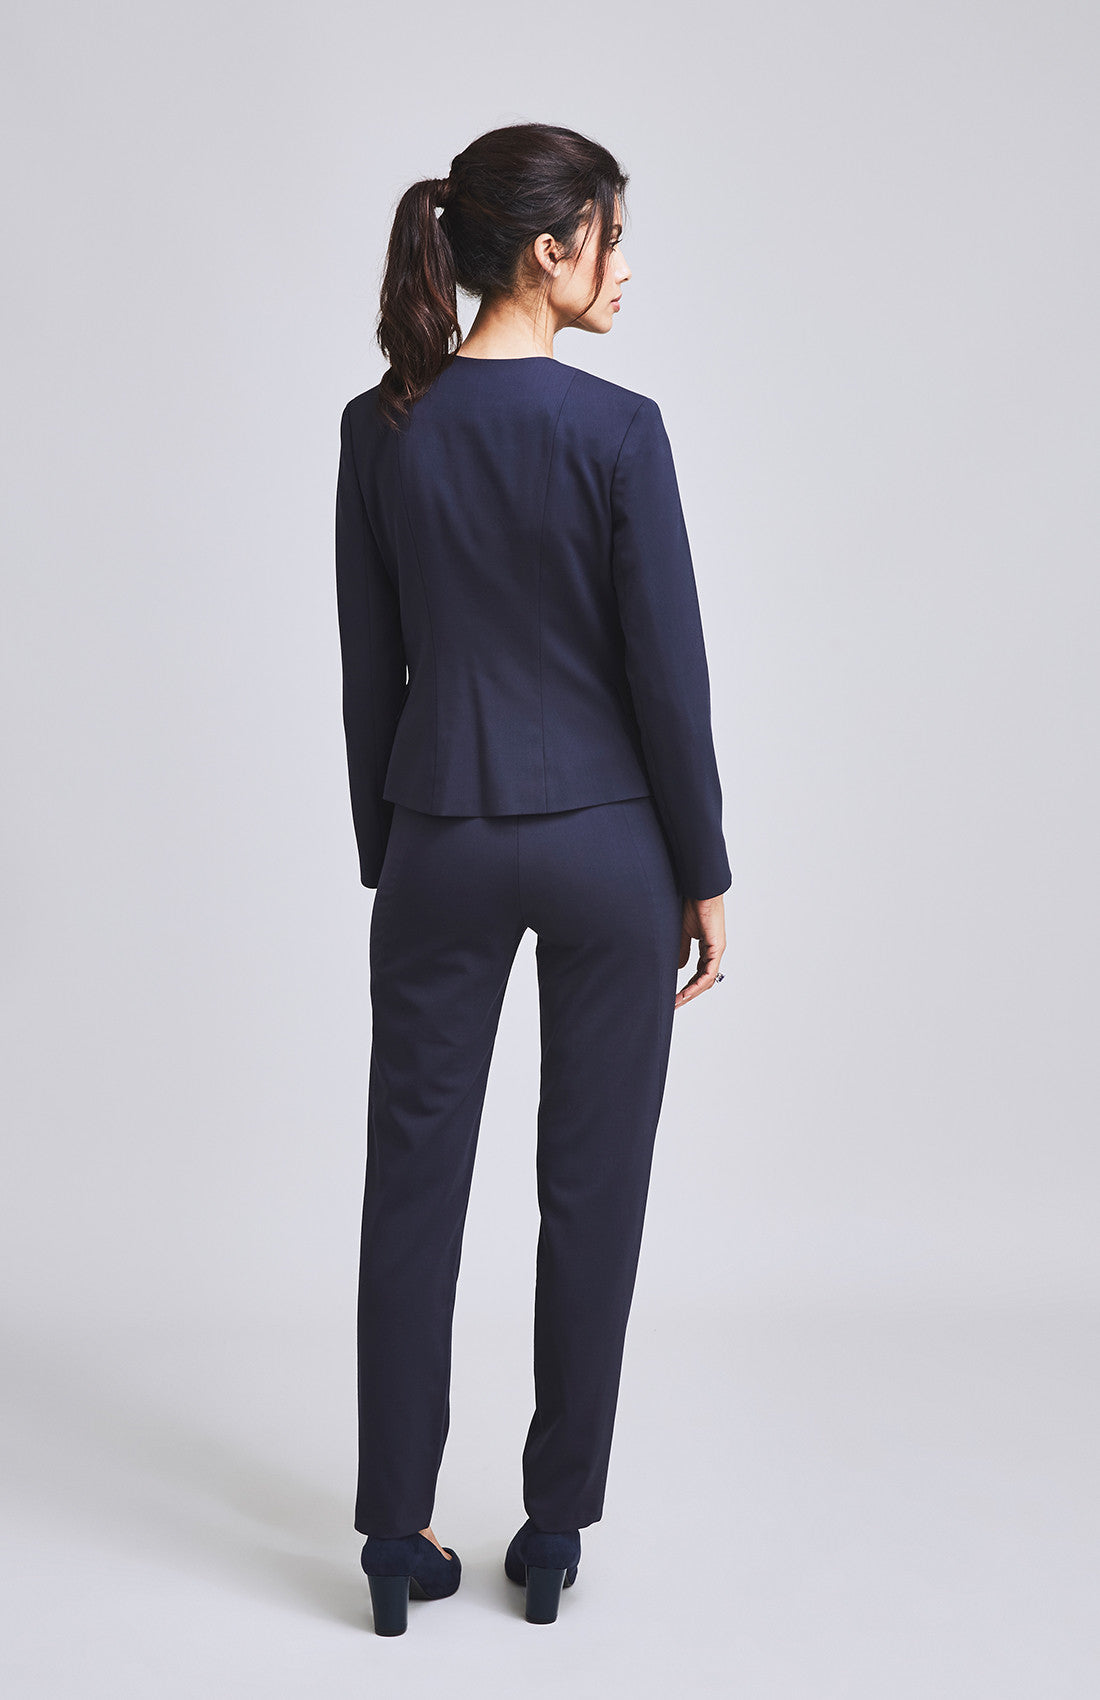 Navy cigarette pant suit for work